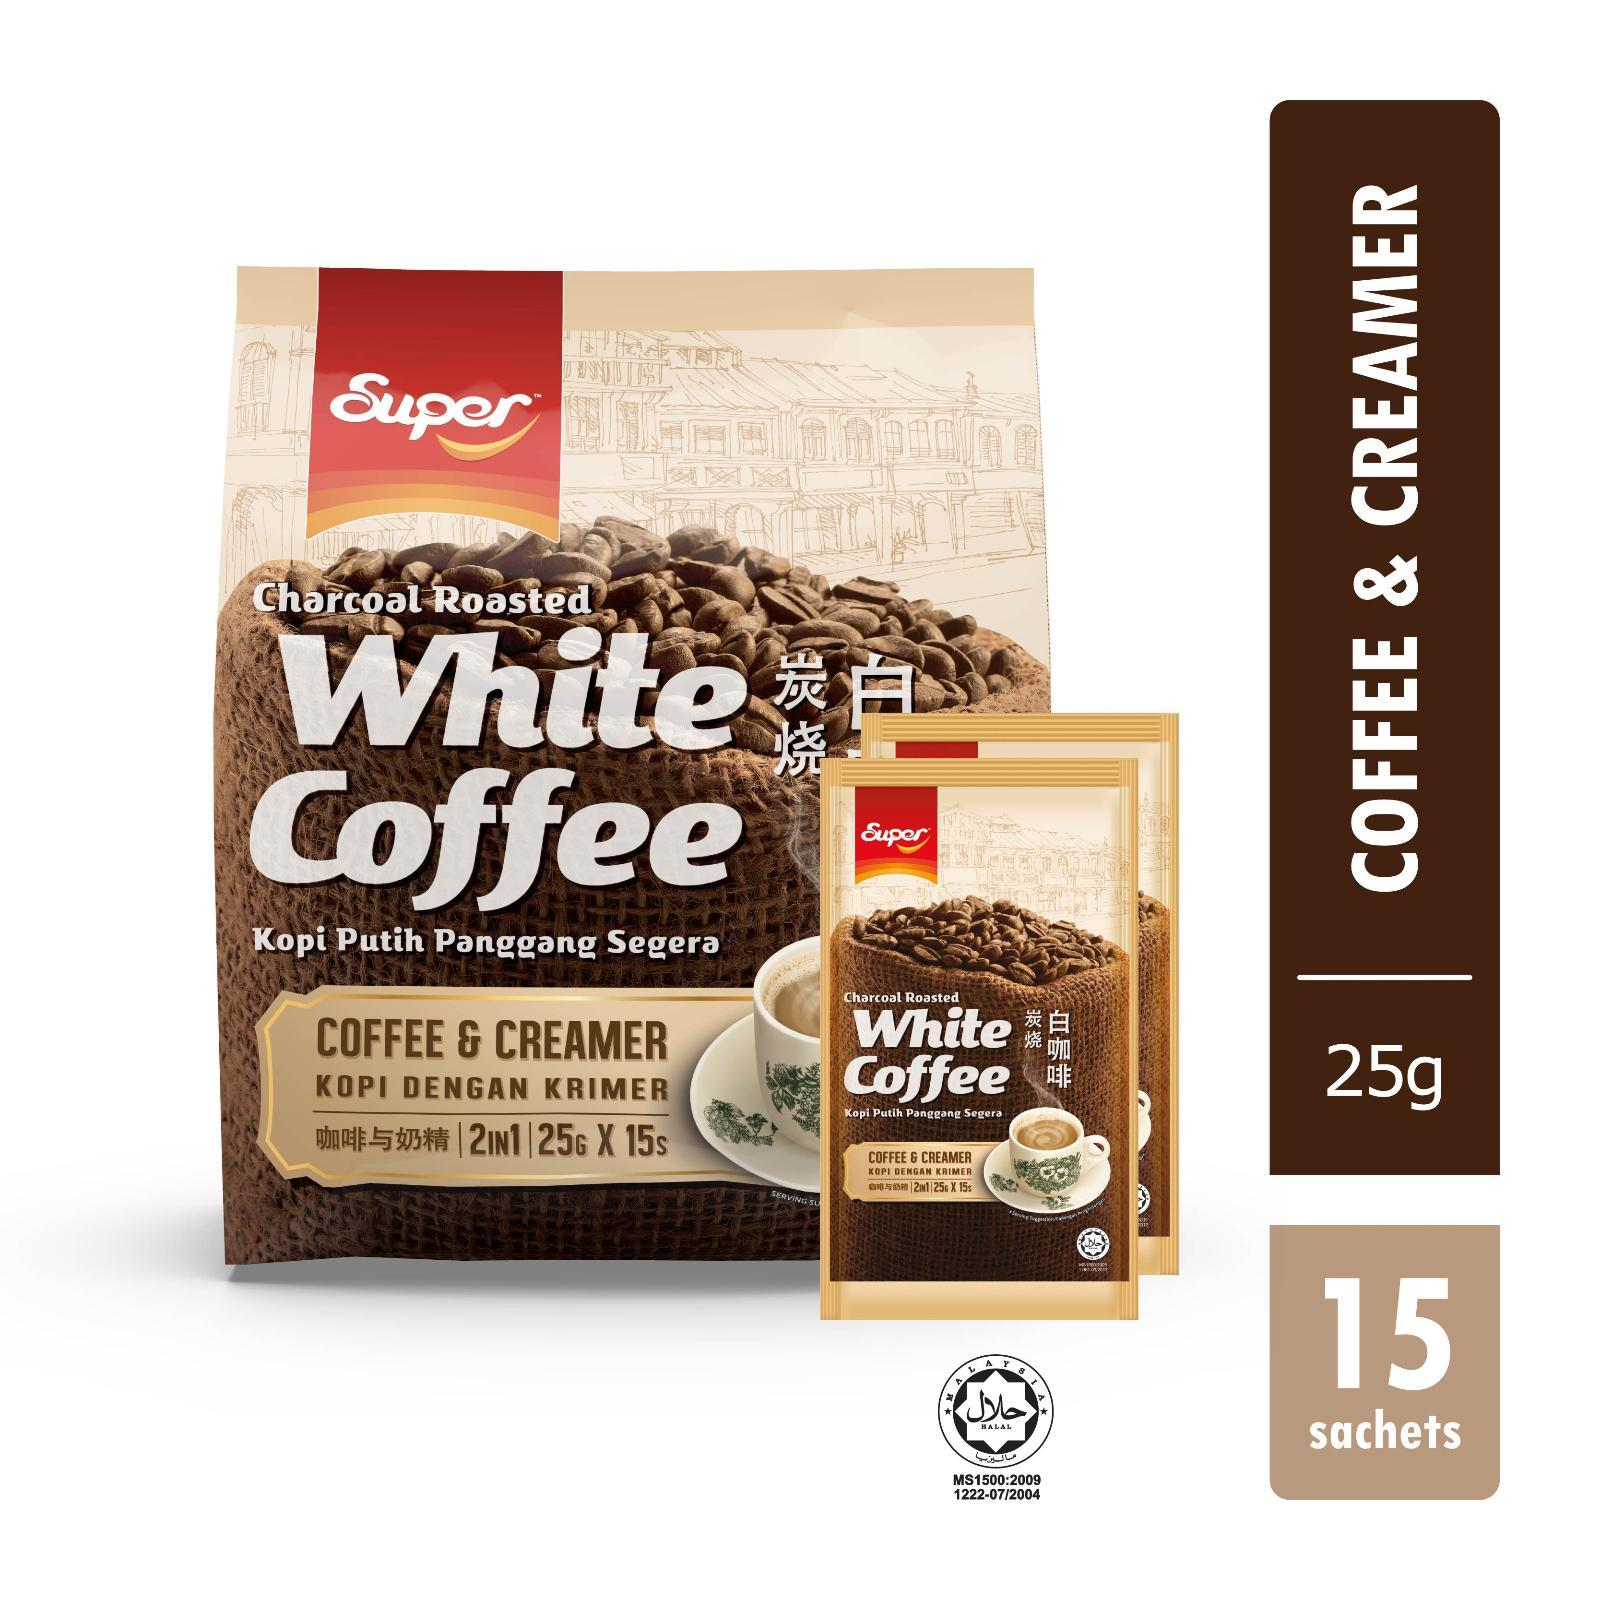 Super 2-in-1 Charcoal Roasted White Coffee